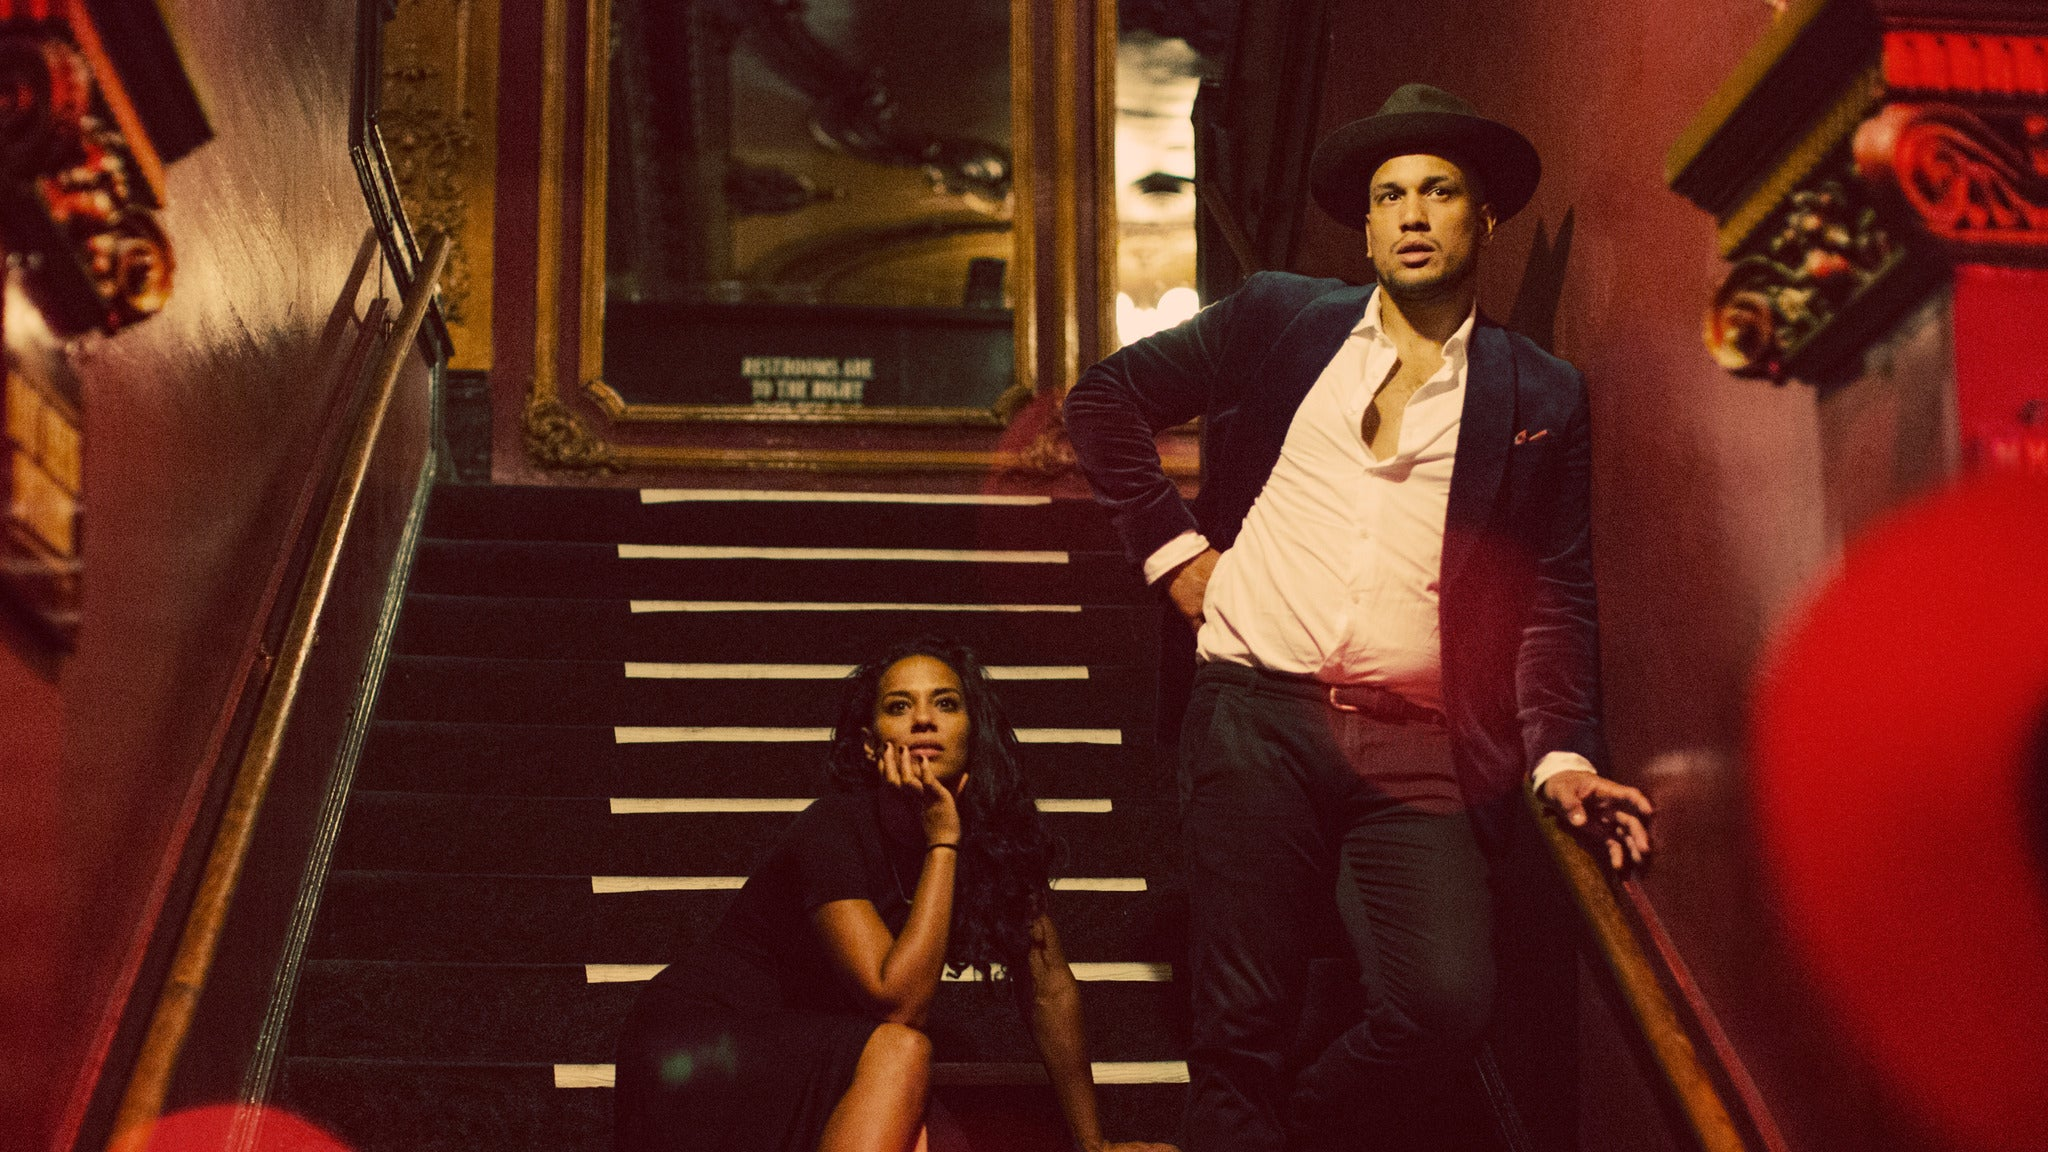 JOHNNYSWIM - Meet & Greet Packages at The Wharf Amphitheater